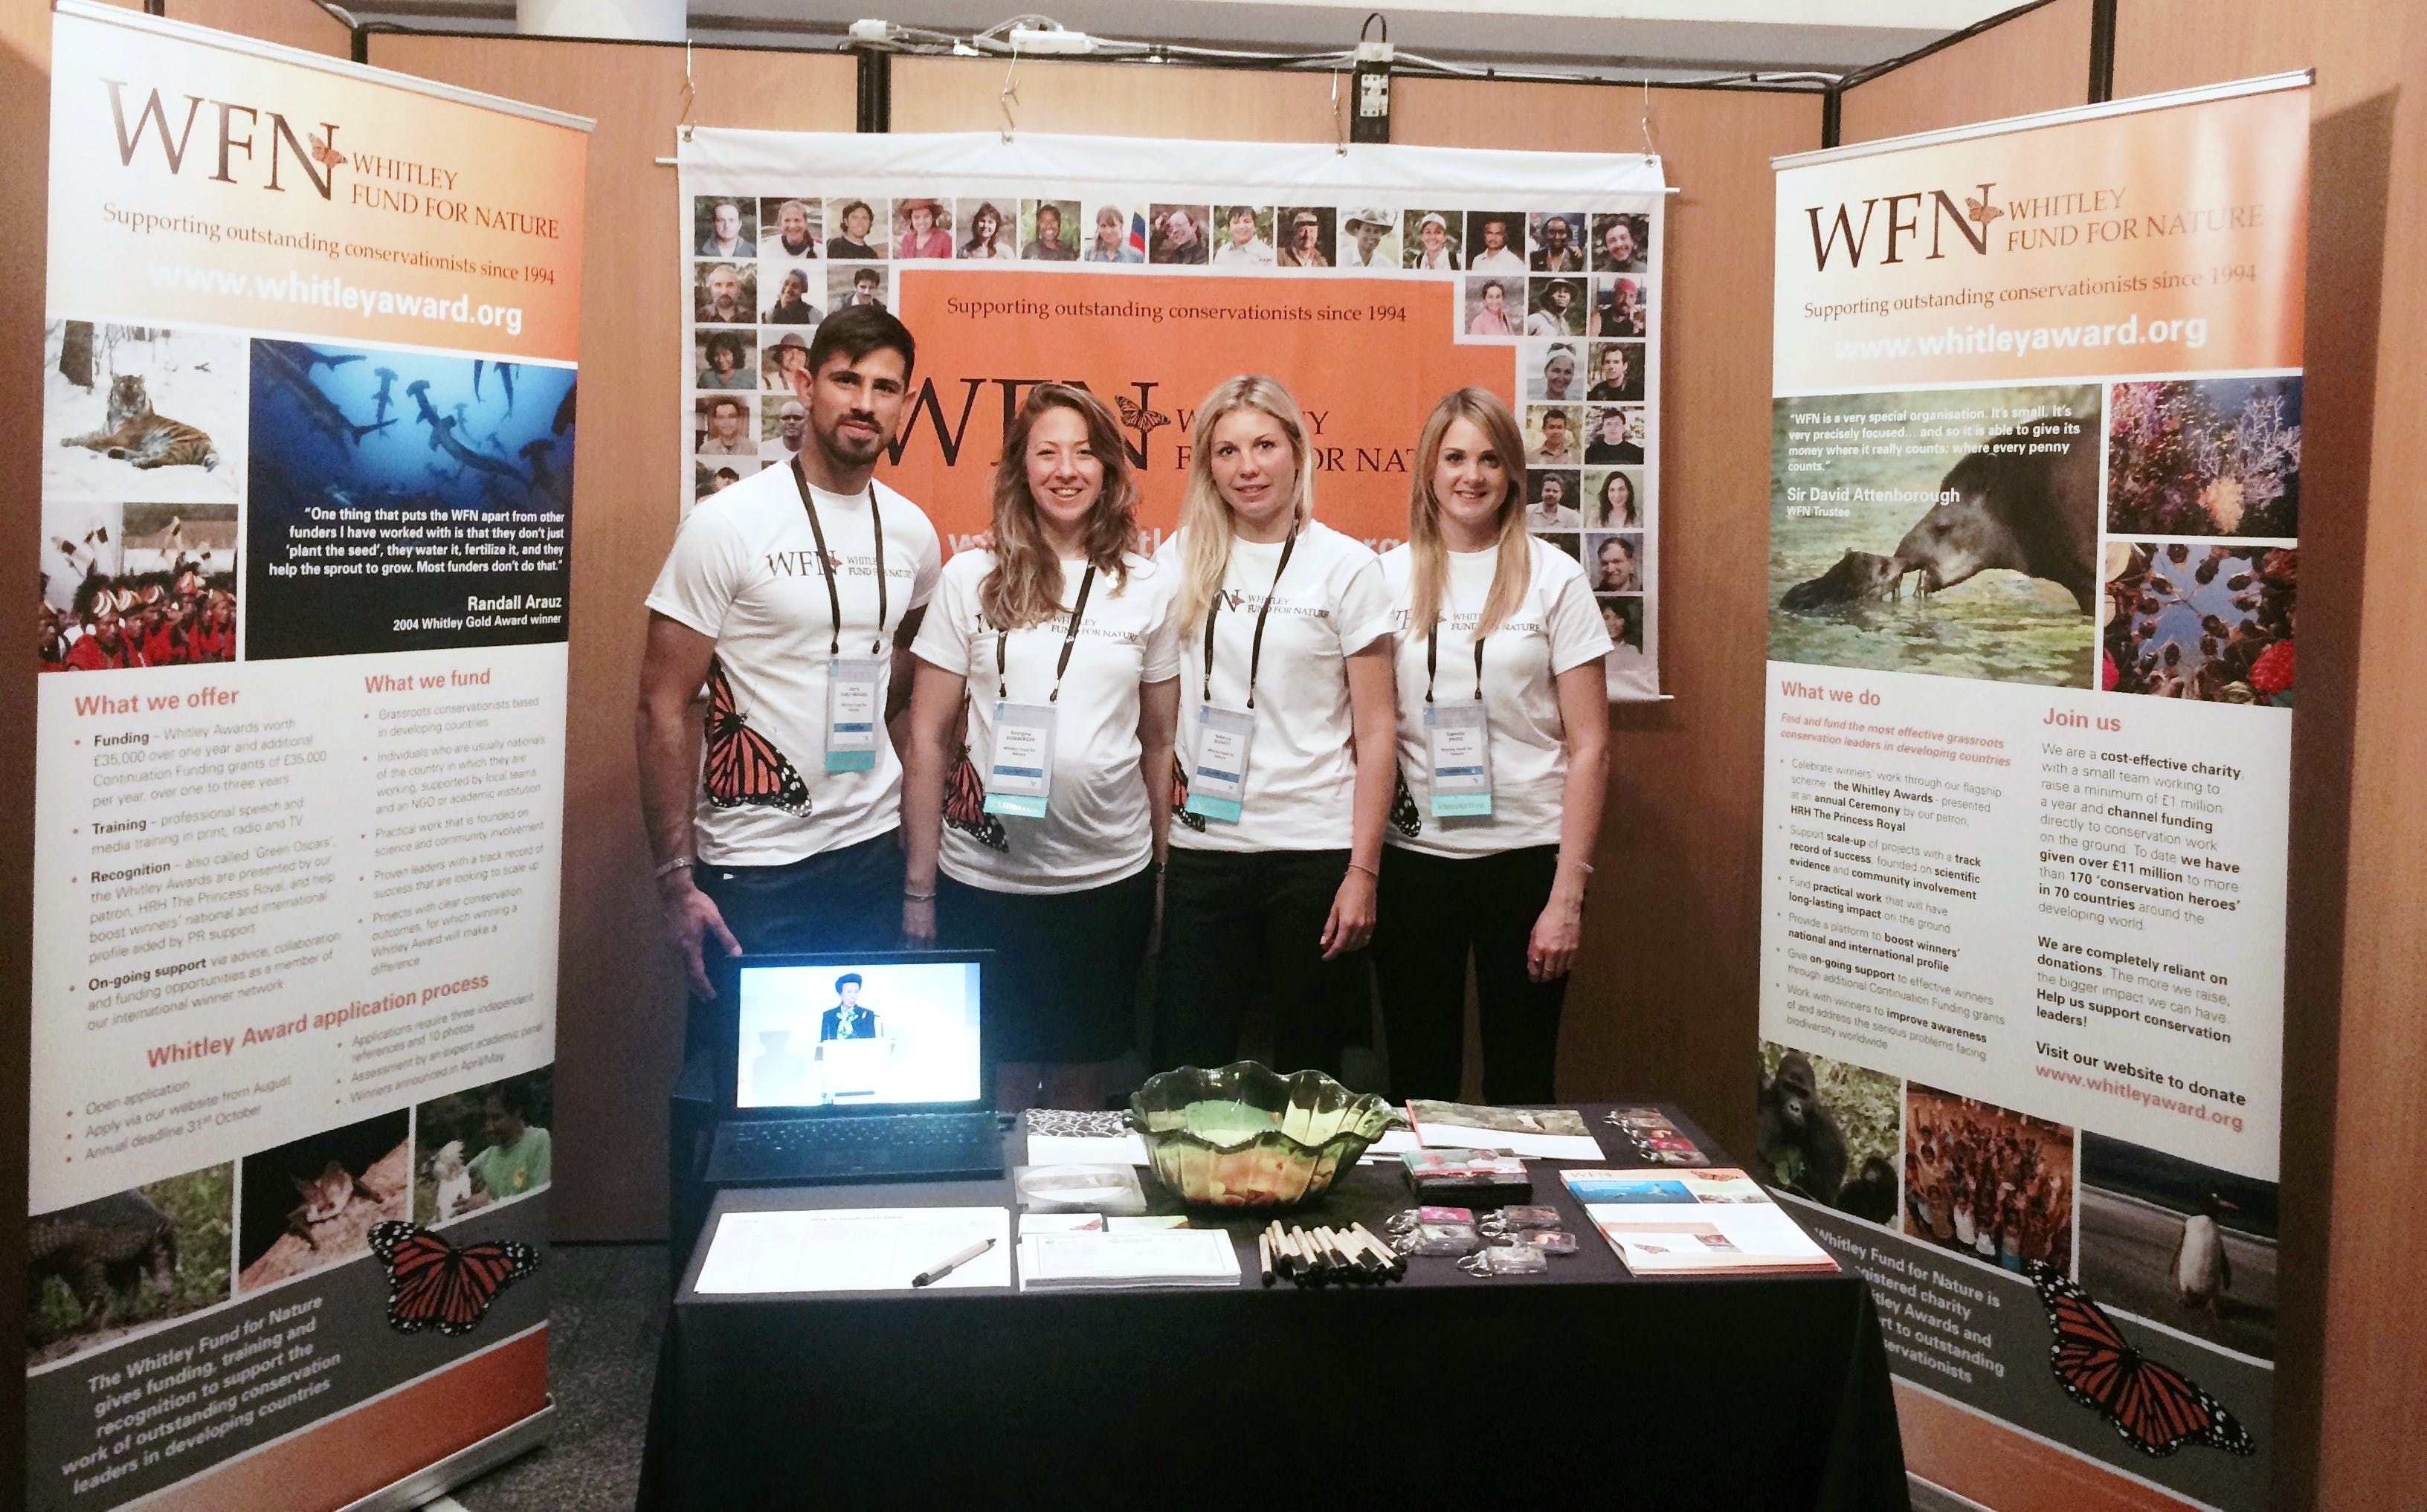 The WFN team (left to right: Harry, Georgina, Rebecca and Danni) in the WFN booth at the ICCB